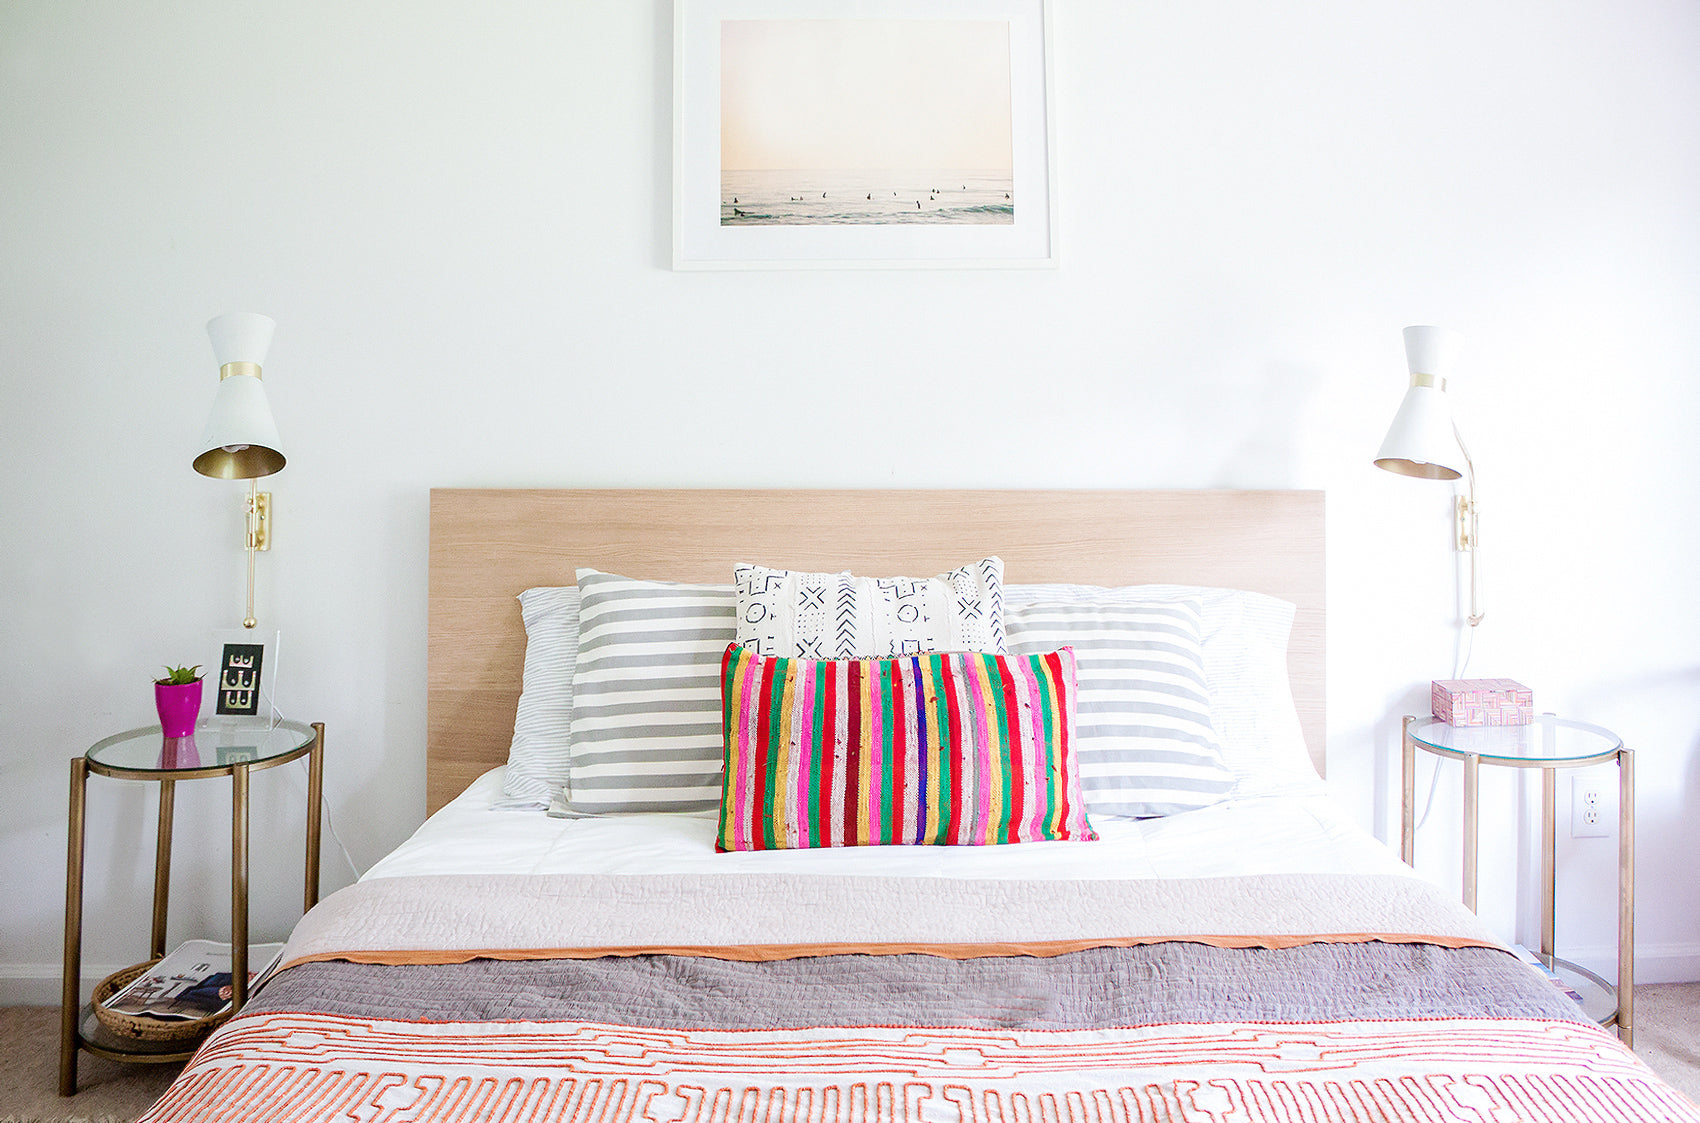 Simple master bed with colorful duvet and patterned cushions